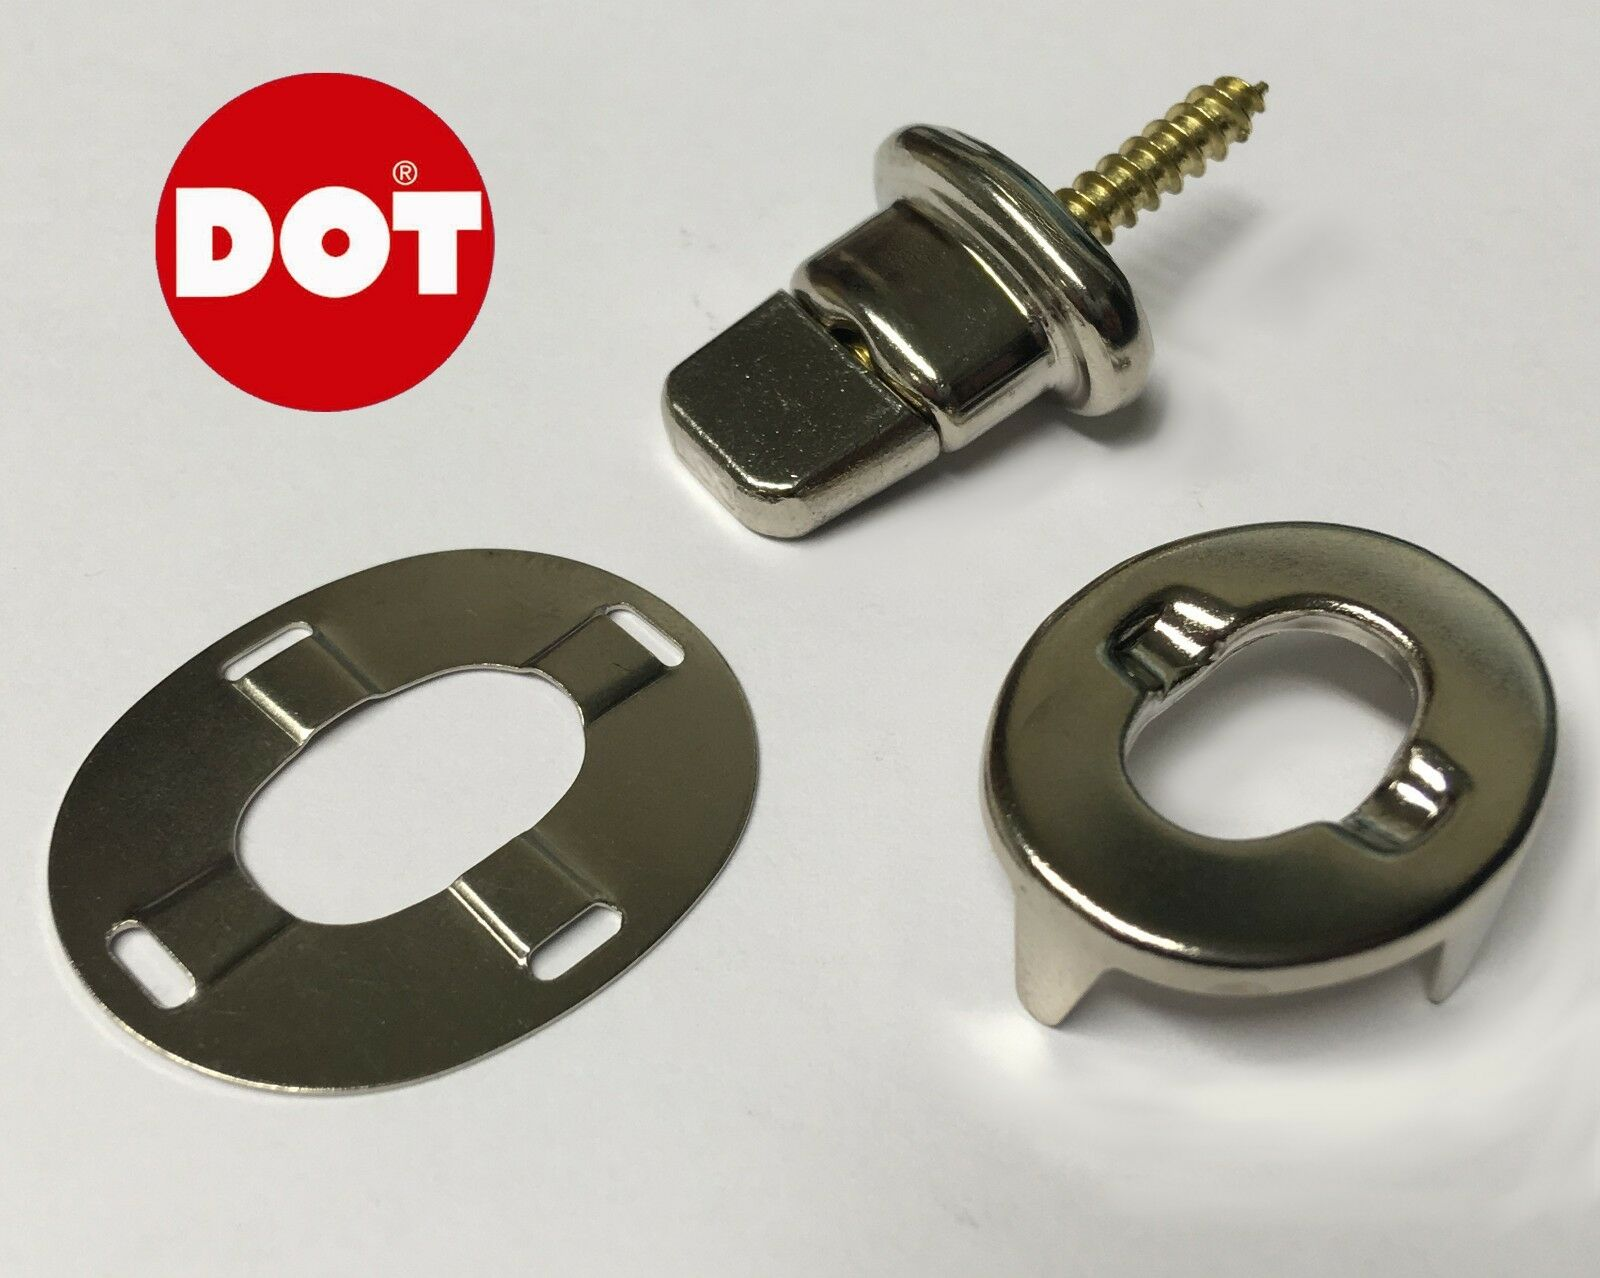 DOT Turnbutton Screw Base Eyelet Ring Washer Canvas Cover Fastener Brass Bimini